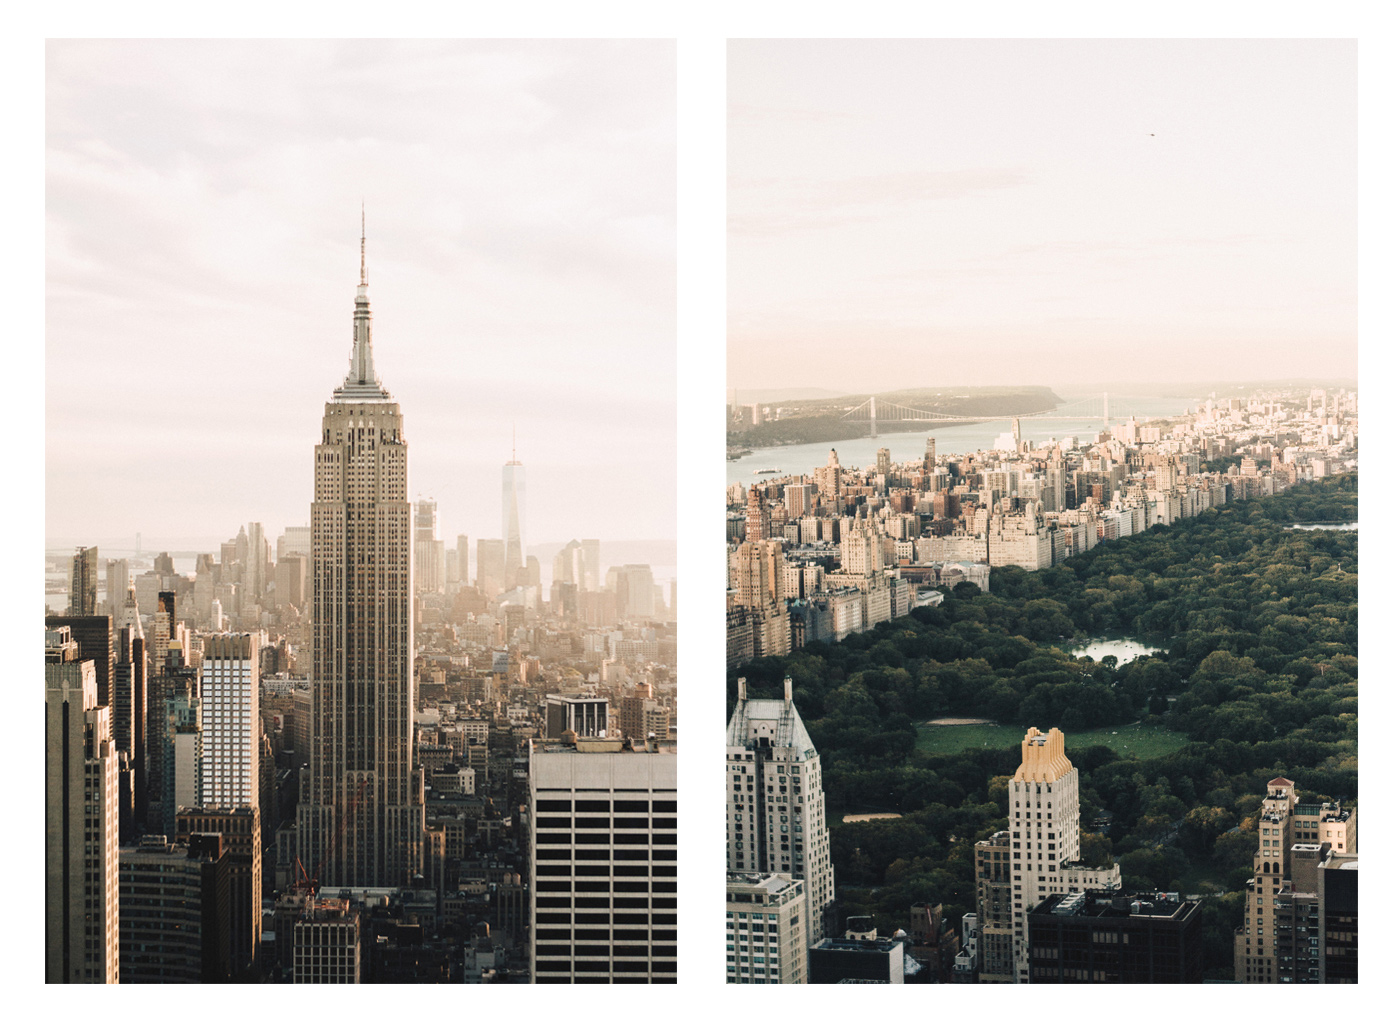 INSANE VIEW OF NEW YORK CITY FROM THE TOP OF the rock during the golden hour